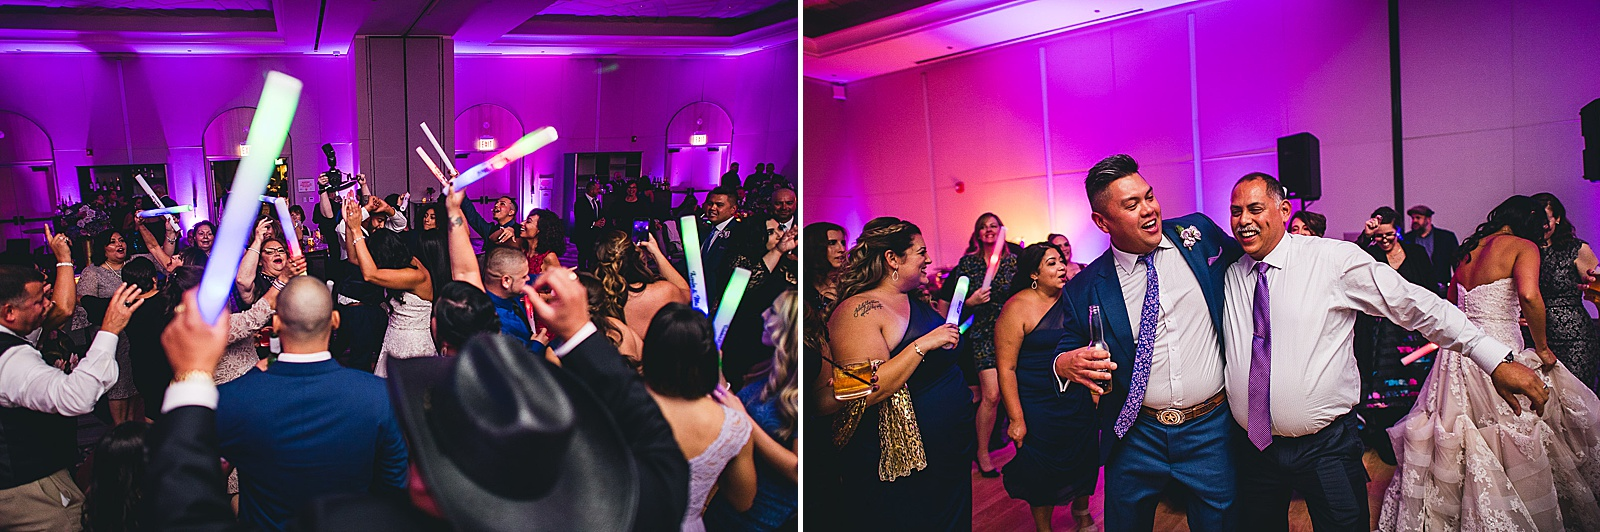 61wedding reception at london house hotel chicago - LondonHouse Wedding Photos // Mari + Kevin